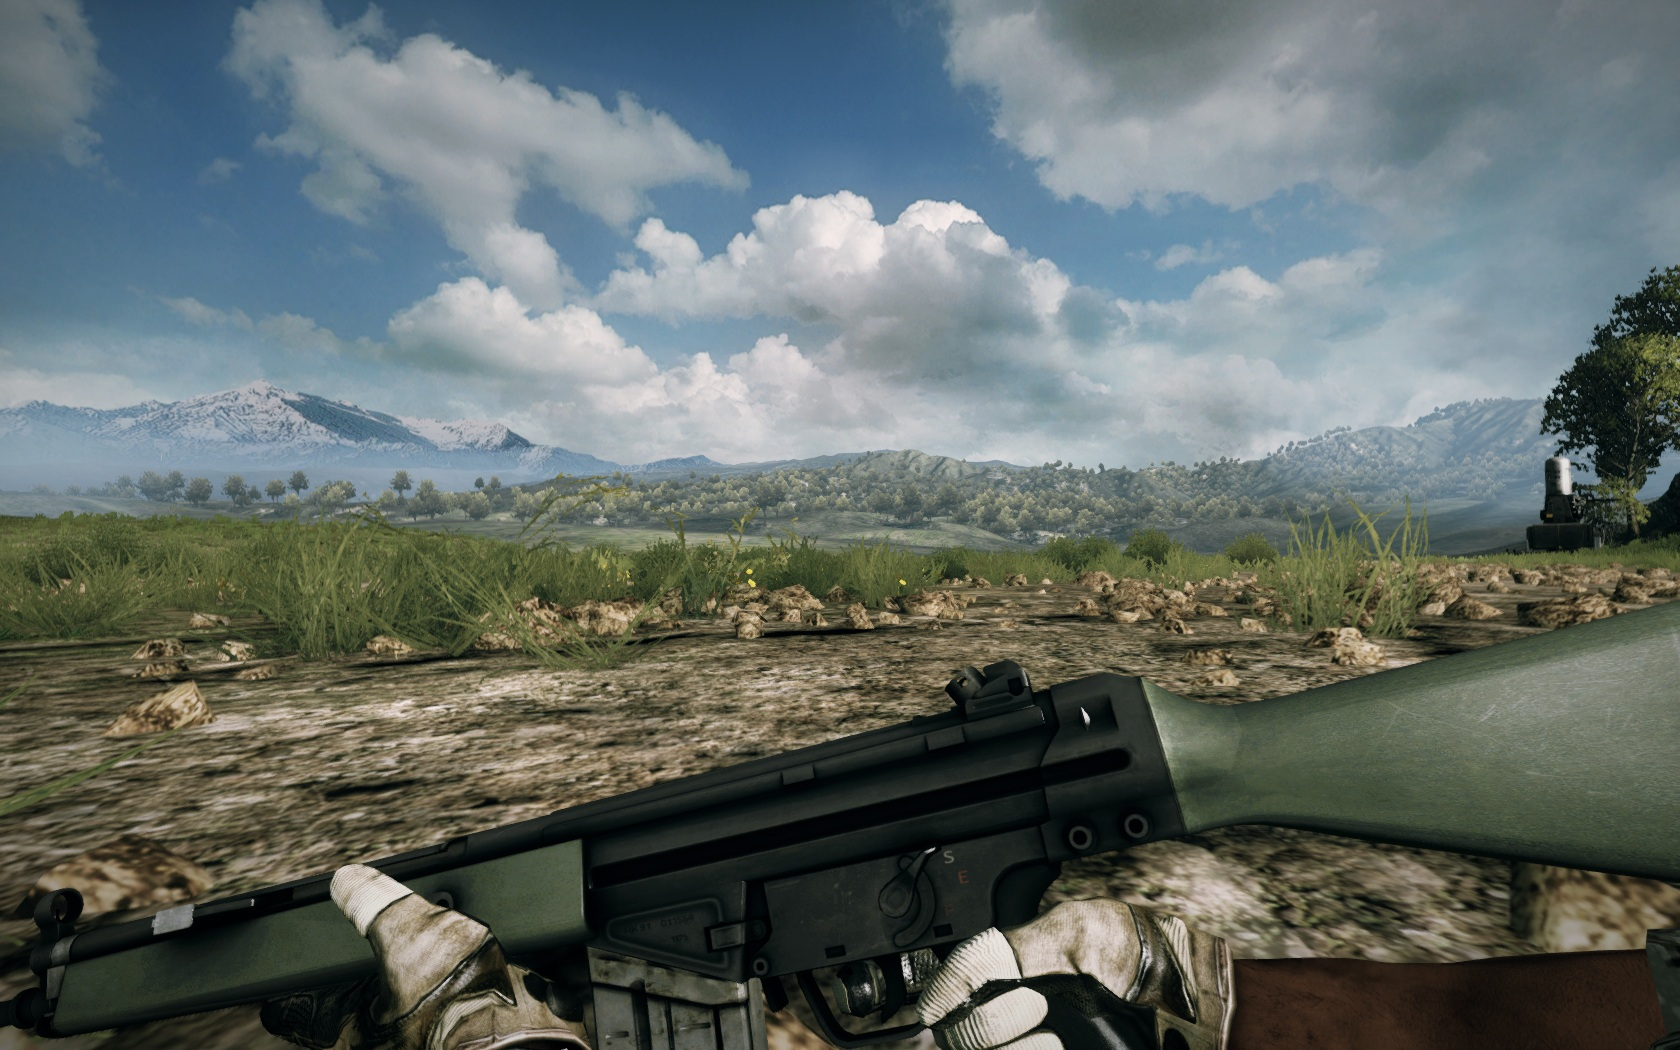 Image - BF3 G3A3 Left Side.jpg - 490.1KB